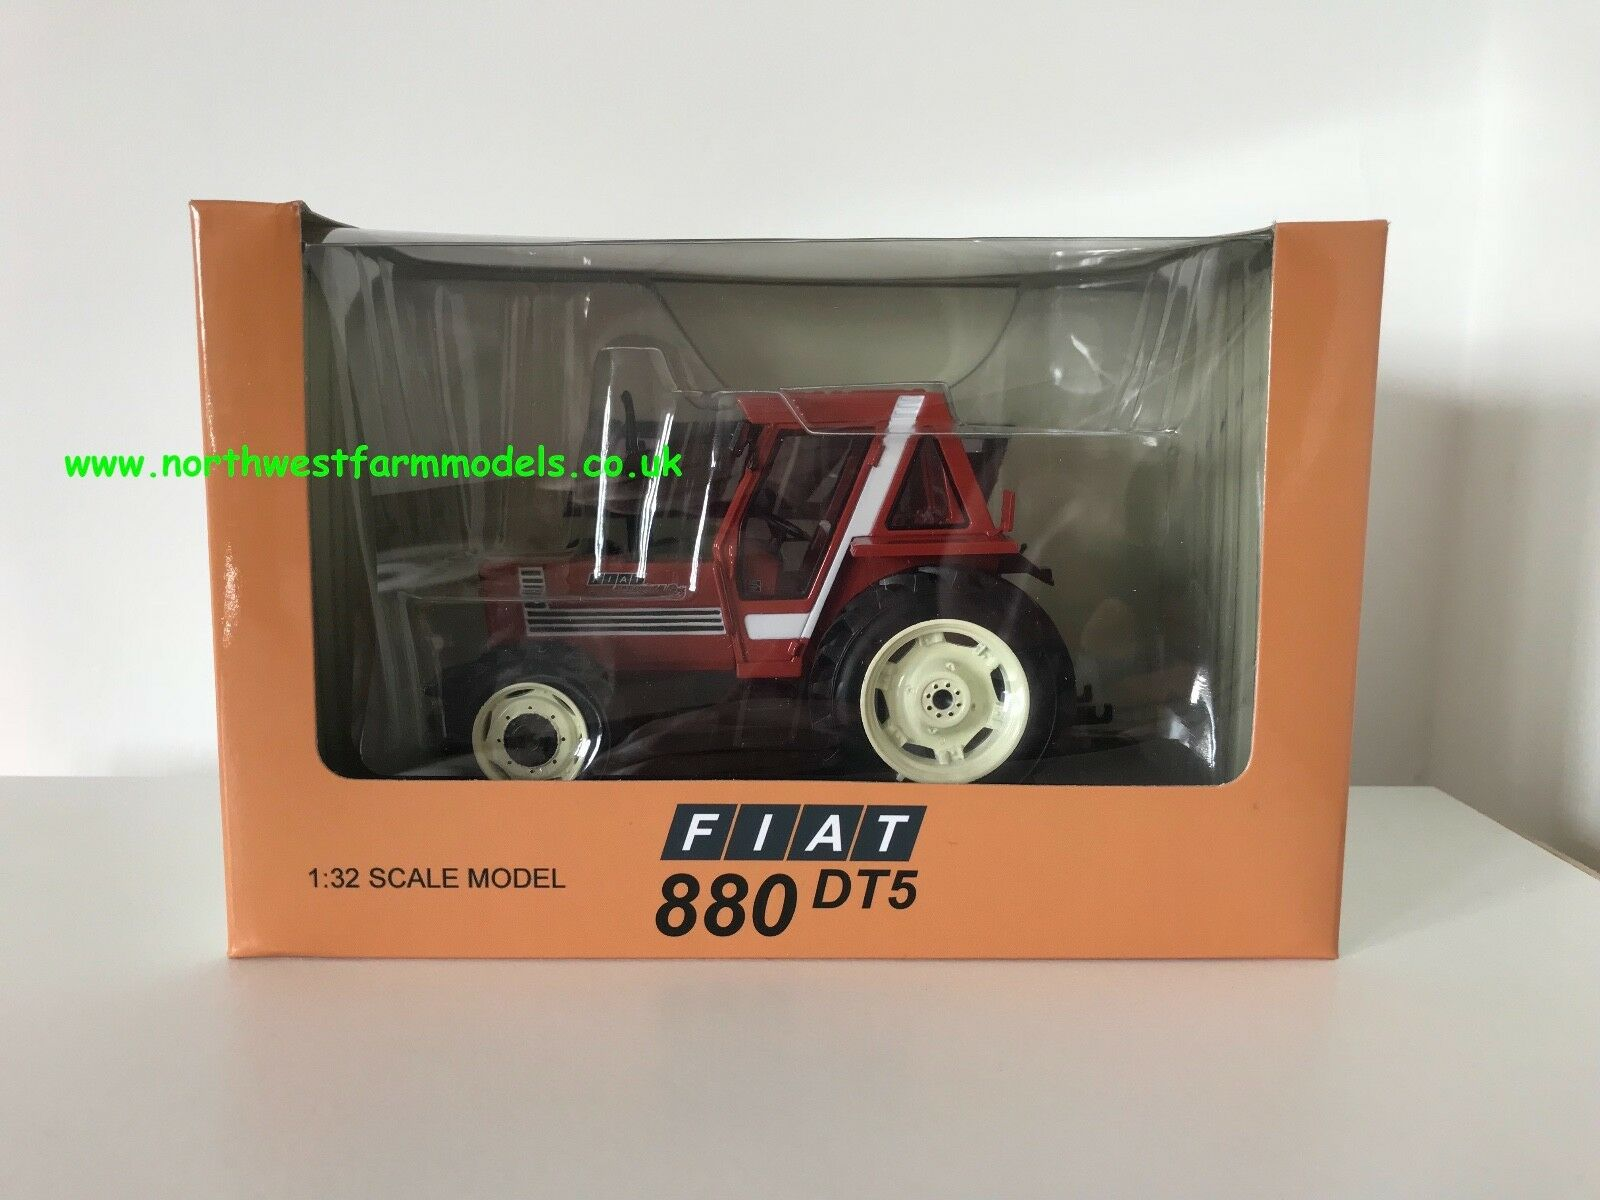 REPLICAGRI 1 32 SCALE FIAT 880 DT TERRACOTTA MODEL TRACTOR